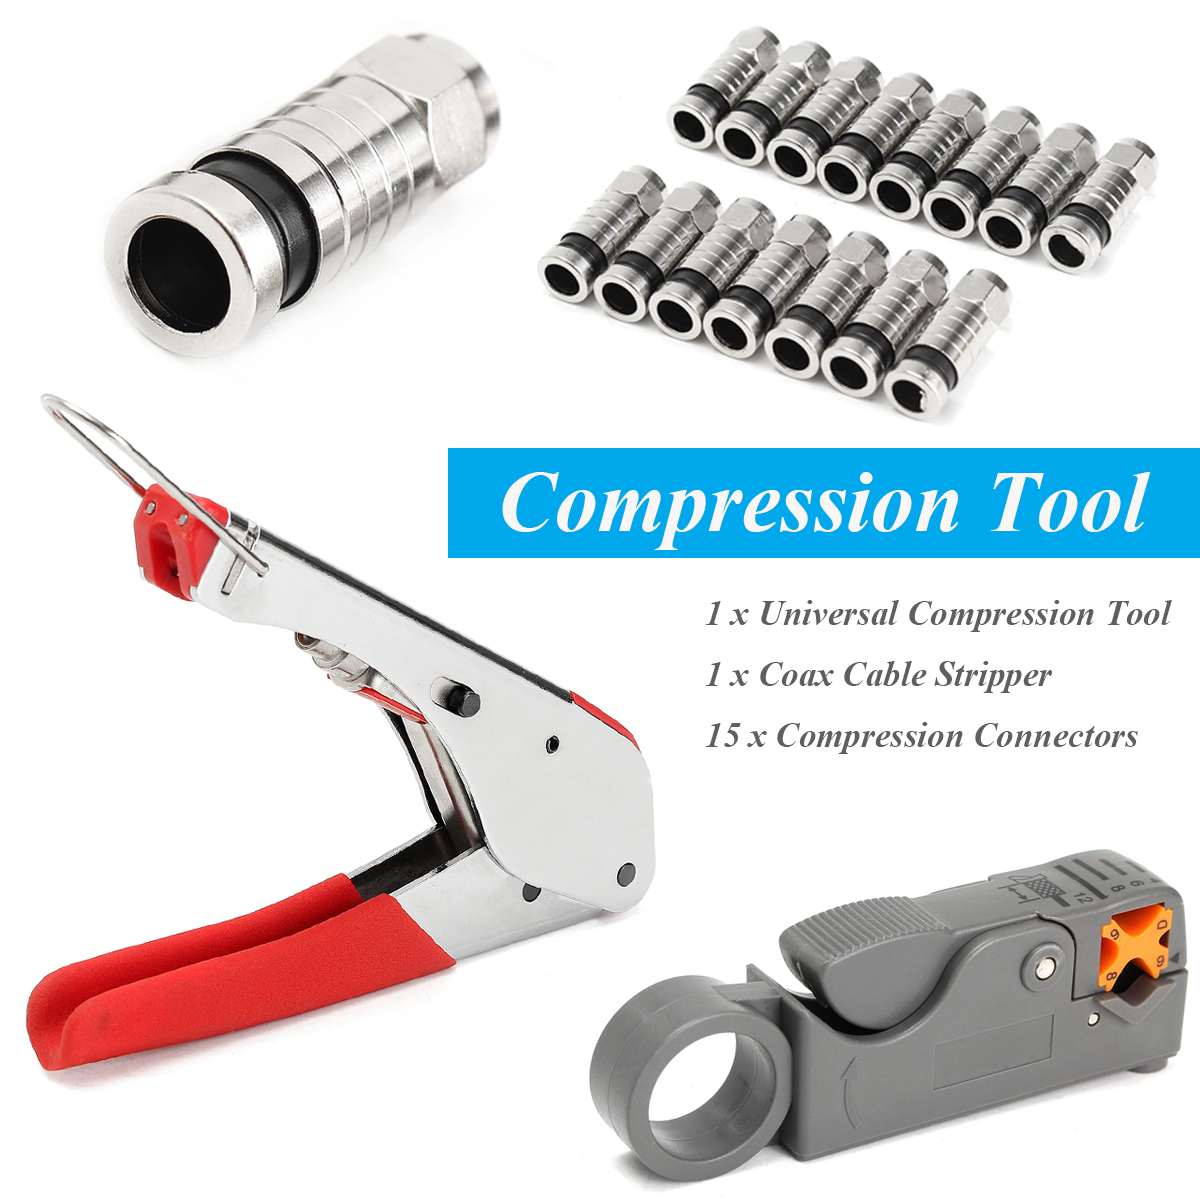 NEW Manual Crimping Tool Set Kit For F-Type Connector RG59 RG6 Coax Cable Crimper With Compression Connectors